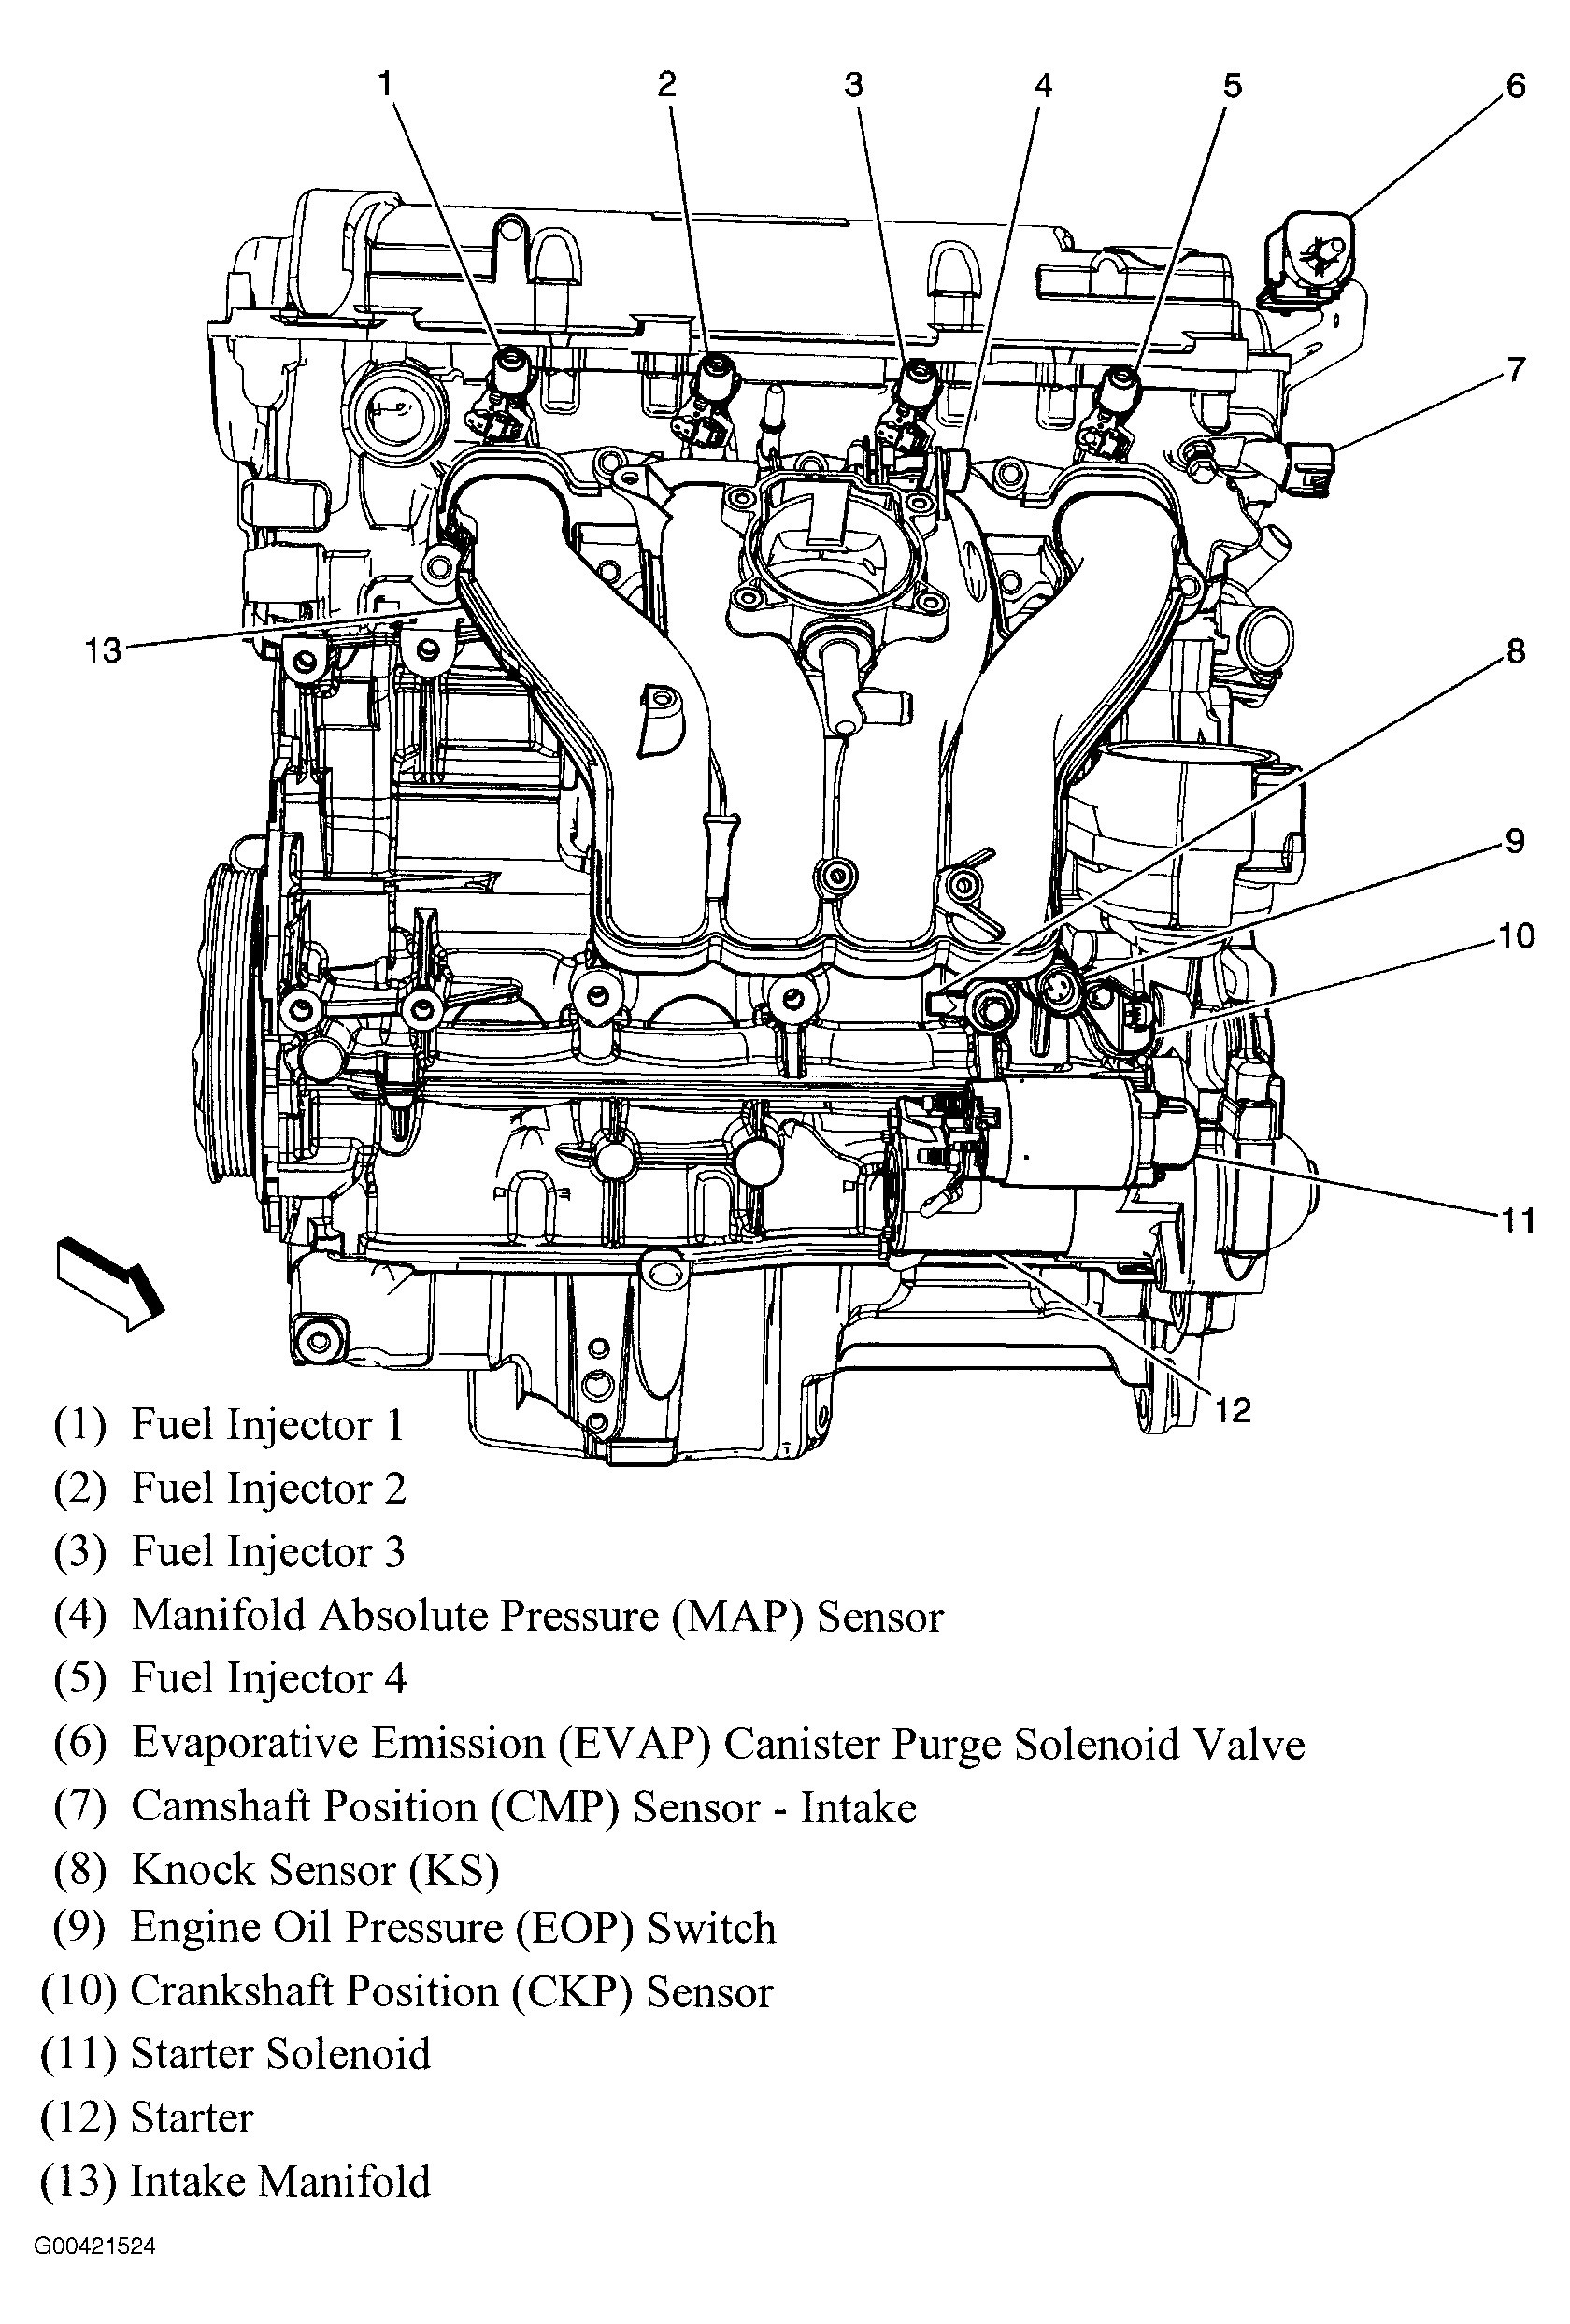 diagram for 2006 chevy uplander engine d8cbaf wiring diagram for 2008 chevy uplander wiring library  wiring diagram for 2008 chevy uplander